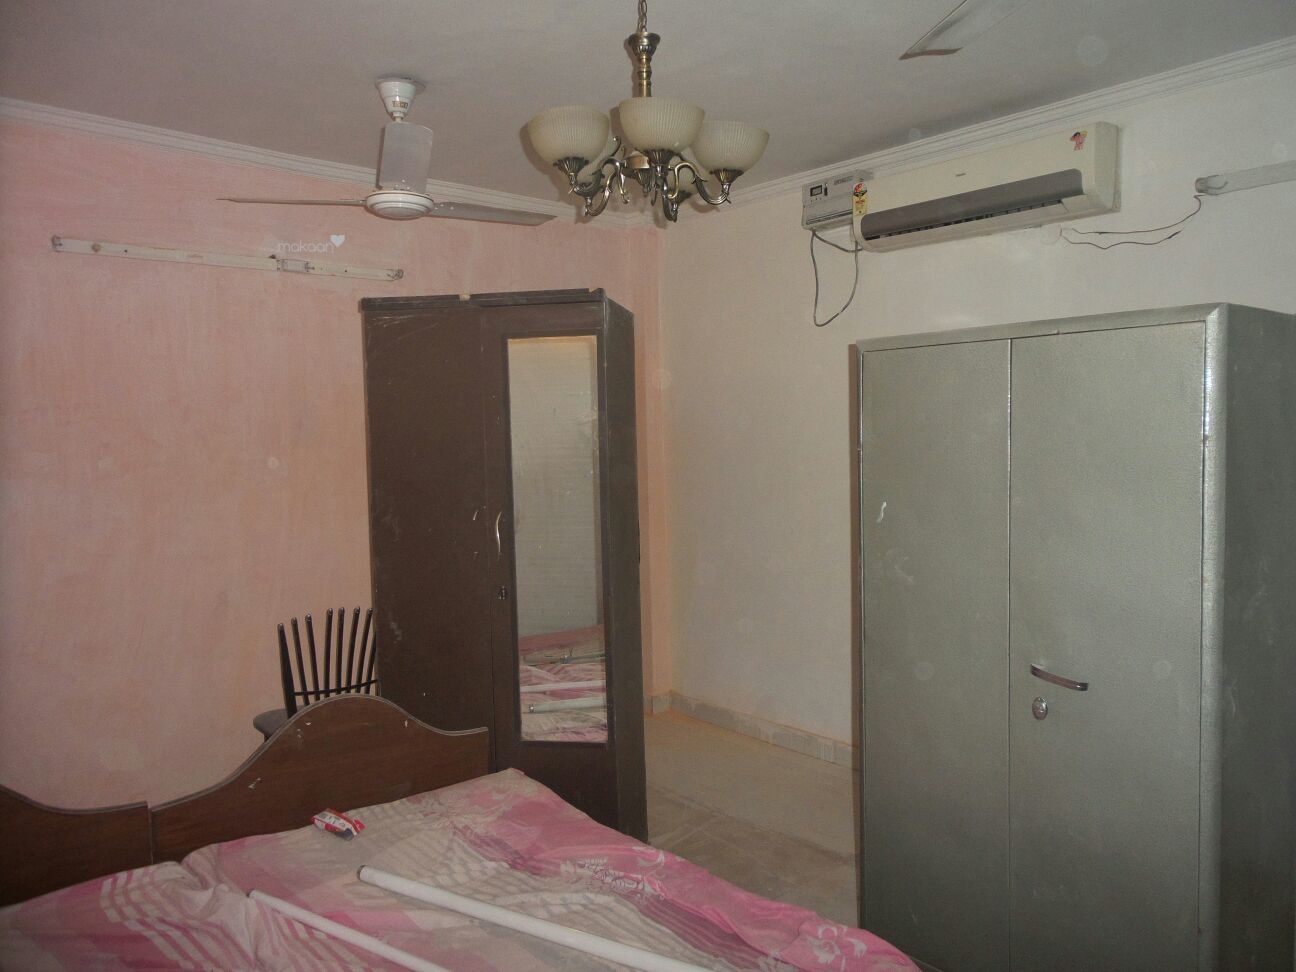 1100 sq ft 1BHK 1BHK+1T (1,100 sq ft) + Study Room Property By Goswami Realtors In Project, East of Kailash